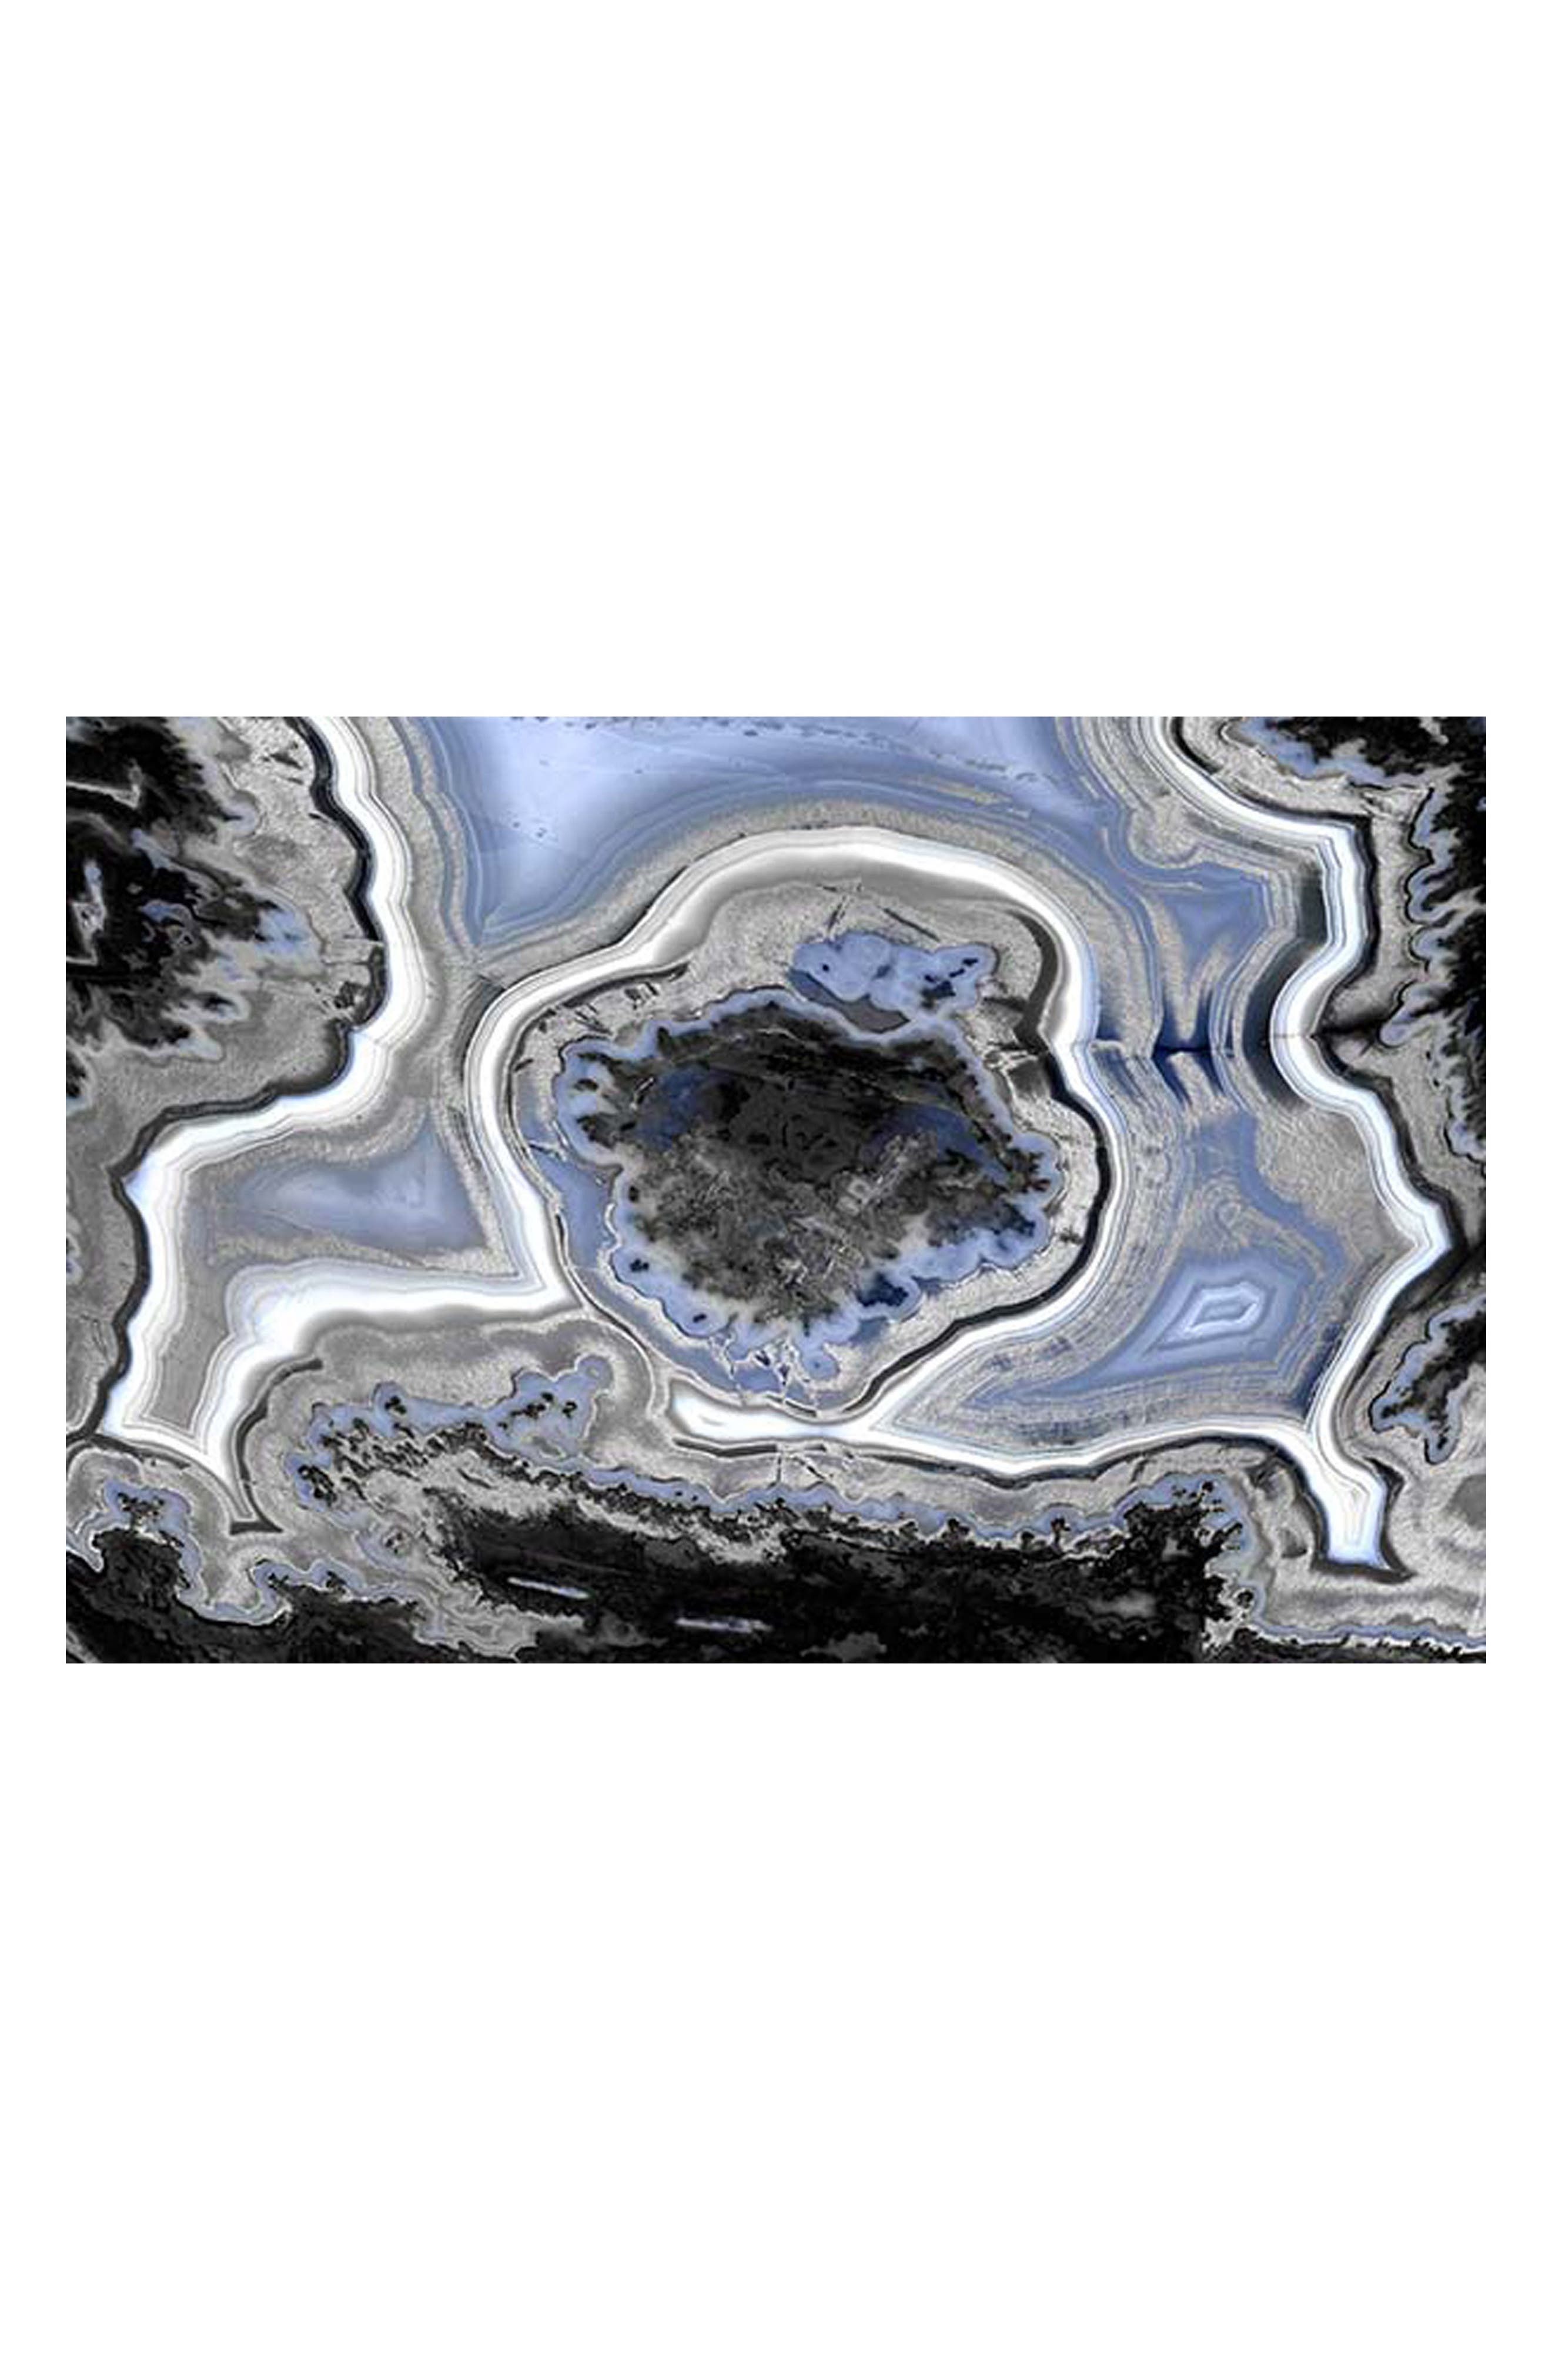 Main Image - Crystal Art Gallery New Agate Print Canvas Wall Art